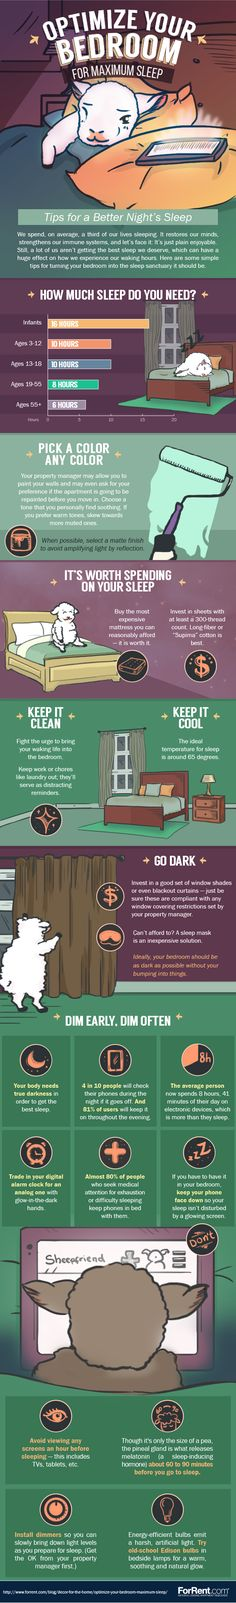 Tips to Optimize Your Bedroom For Maximum Sleep - Tipsographic